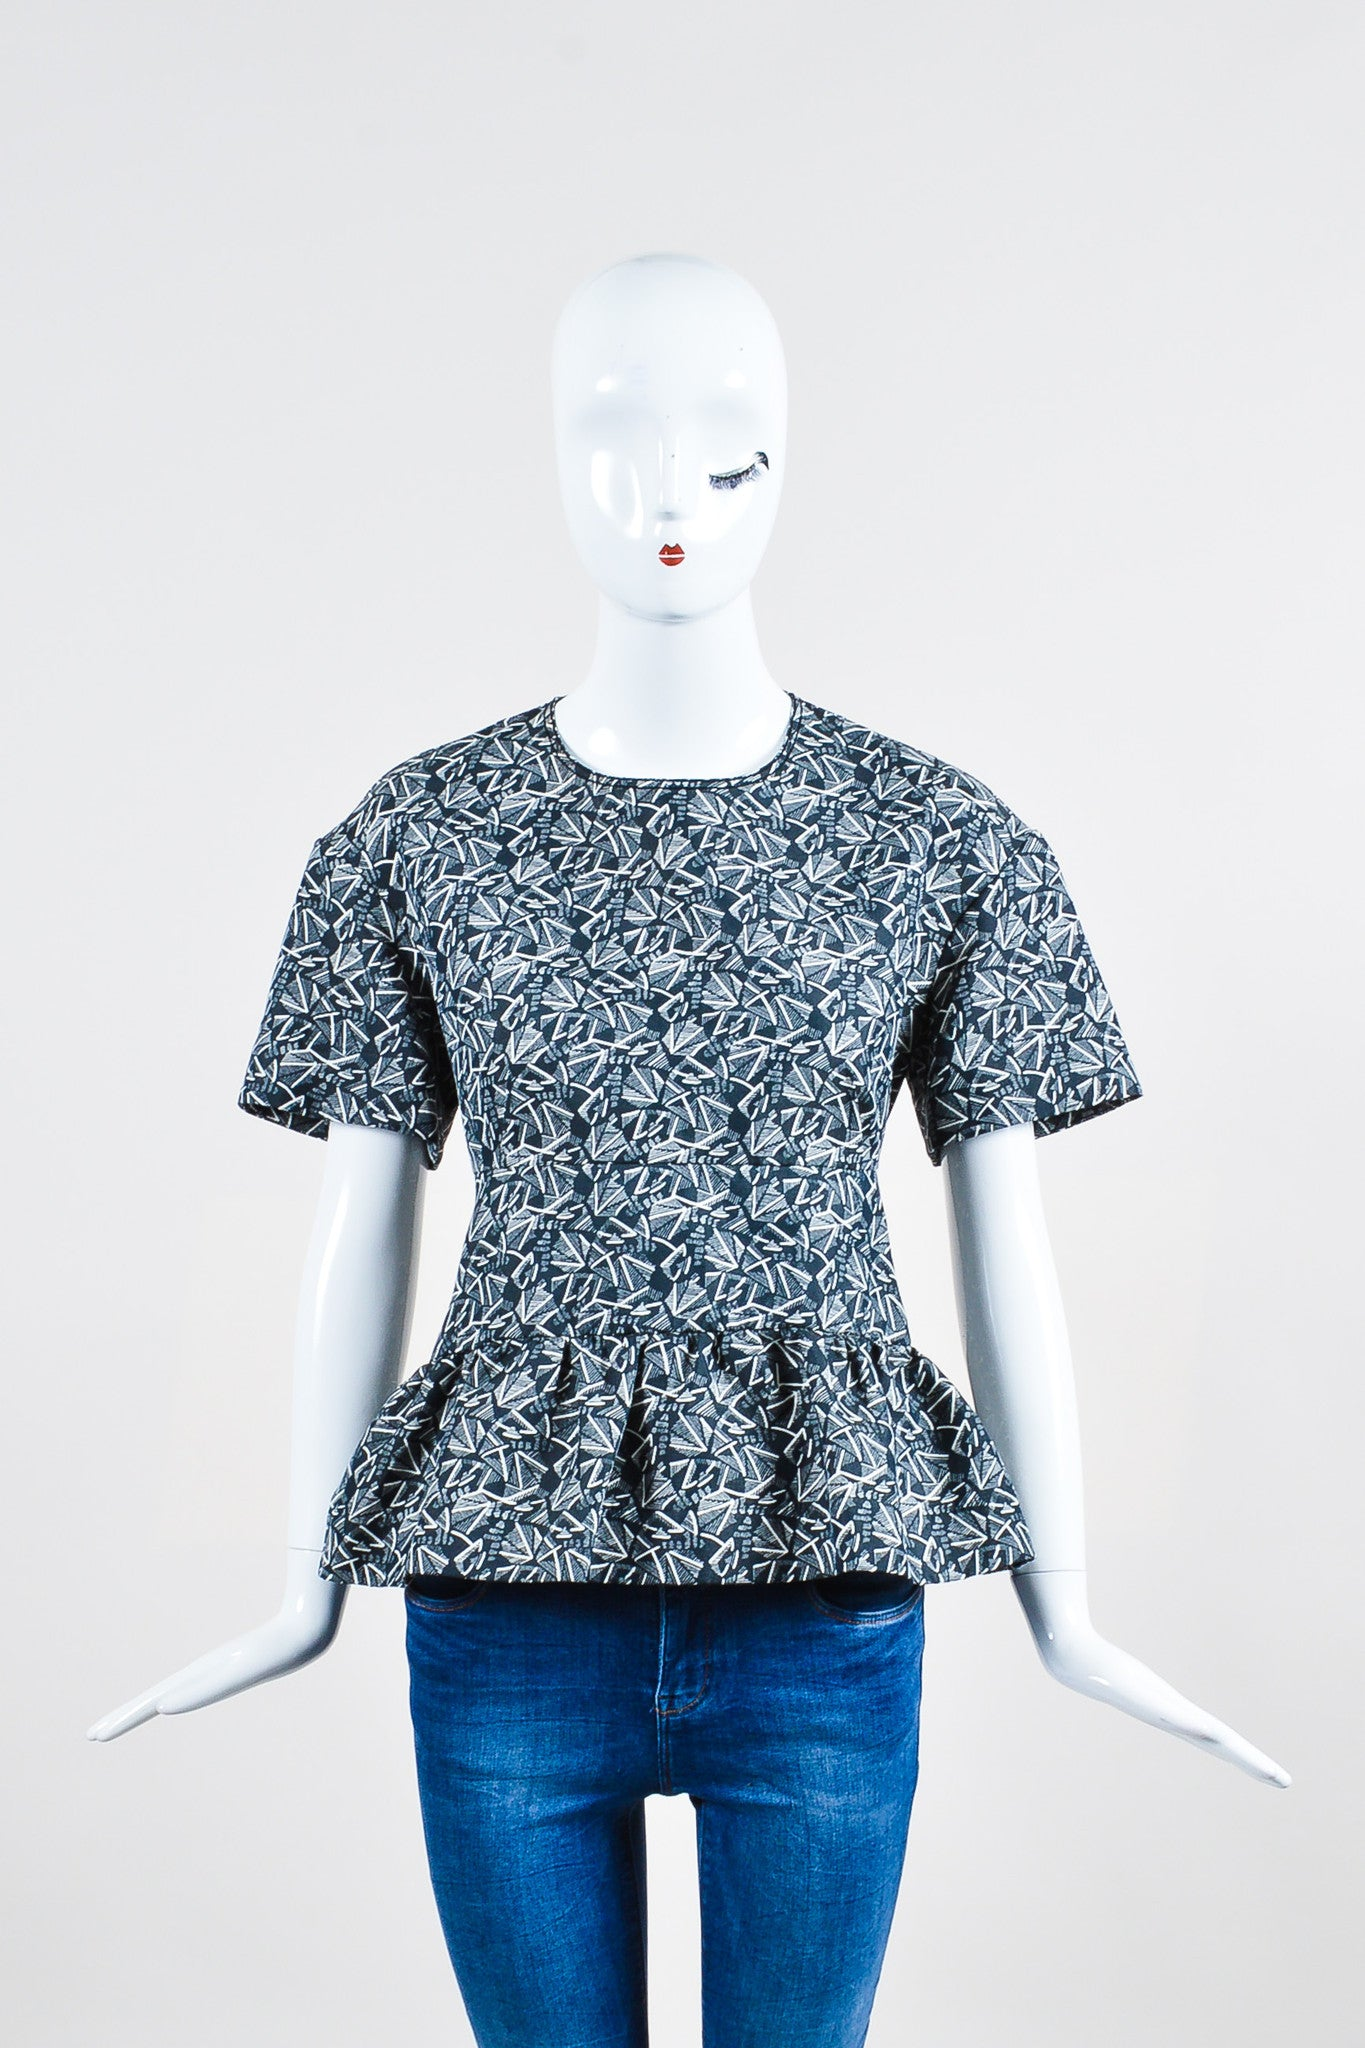 Blue-Grey and White Marni Geometric Print Pleated Short Sleeve Top Frontview